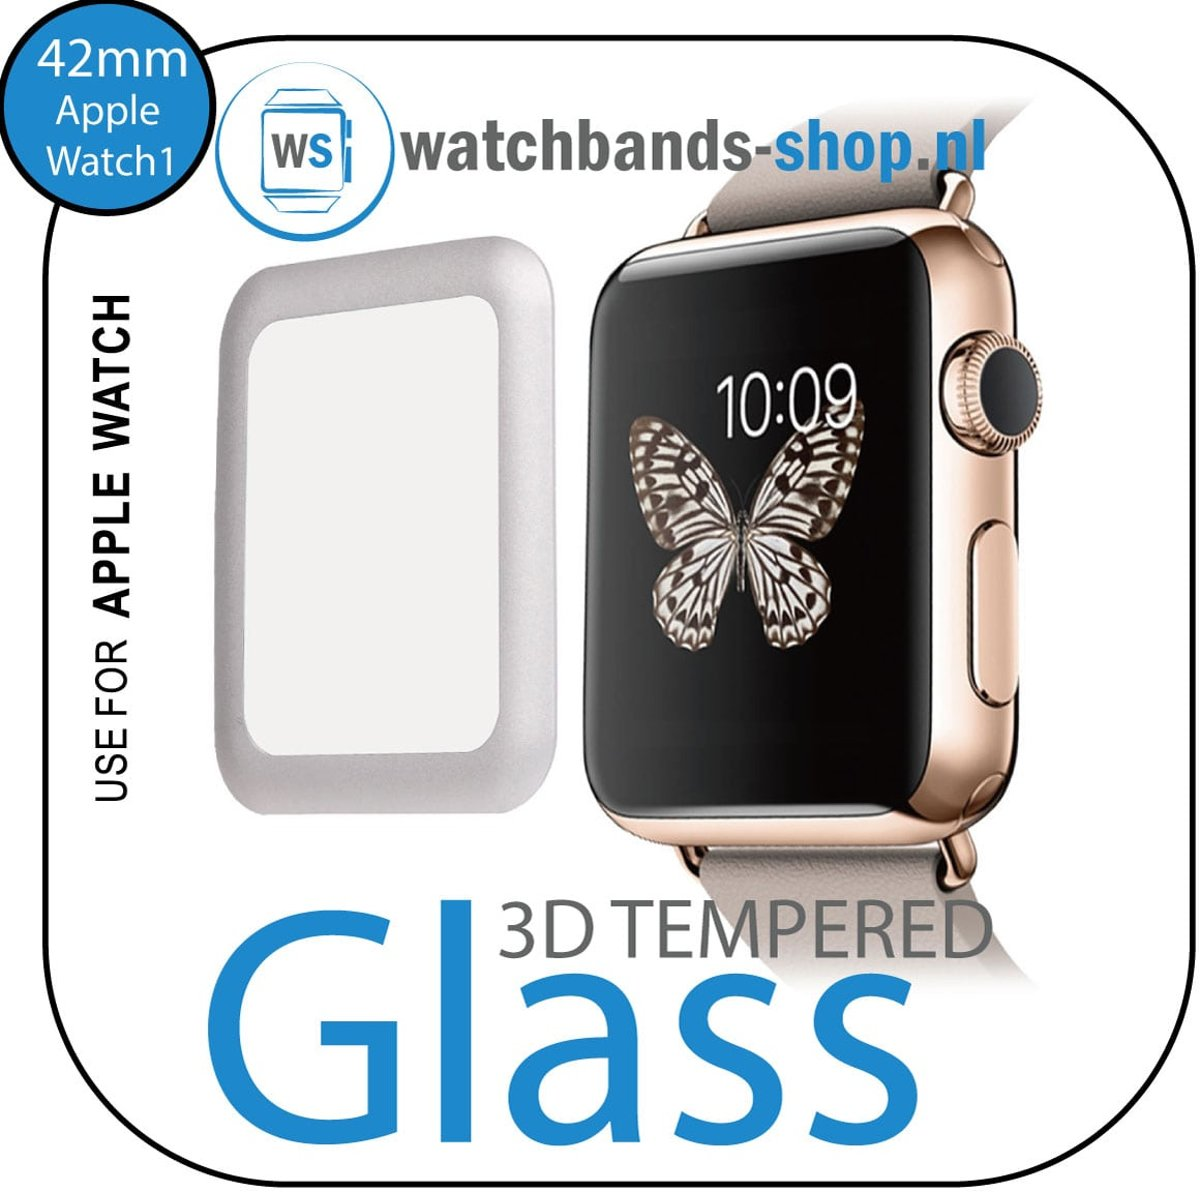 Watchbands-shop.nl 42mm full Cover 3D Tempered Glass Screen Protector For Apple watch / iWatch 1 silver edge kopen